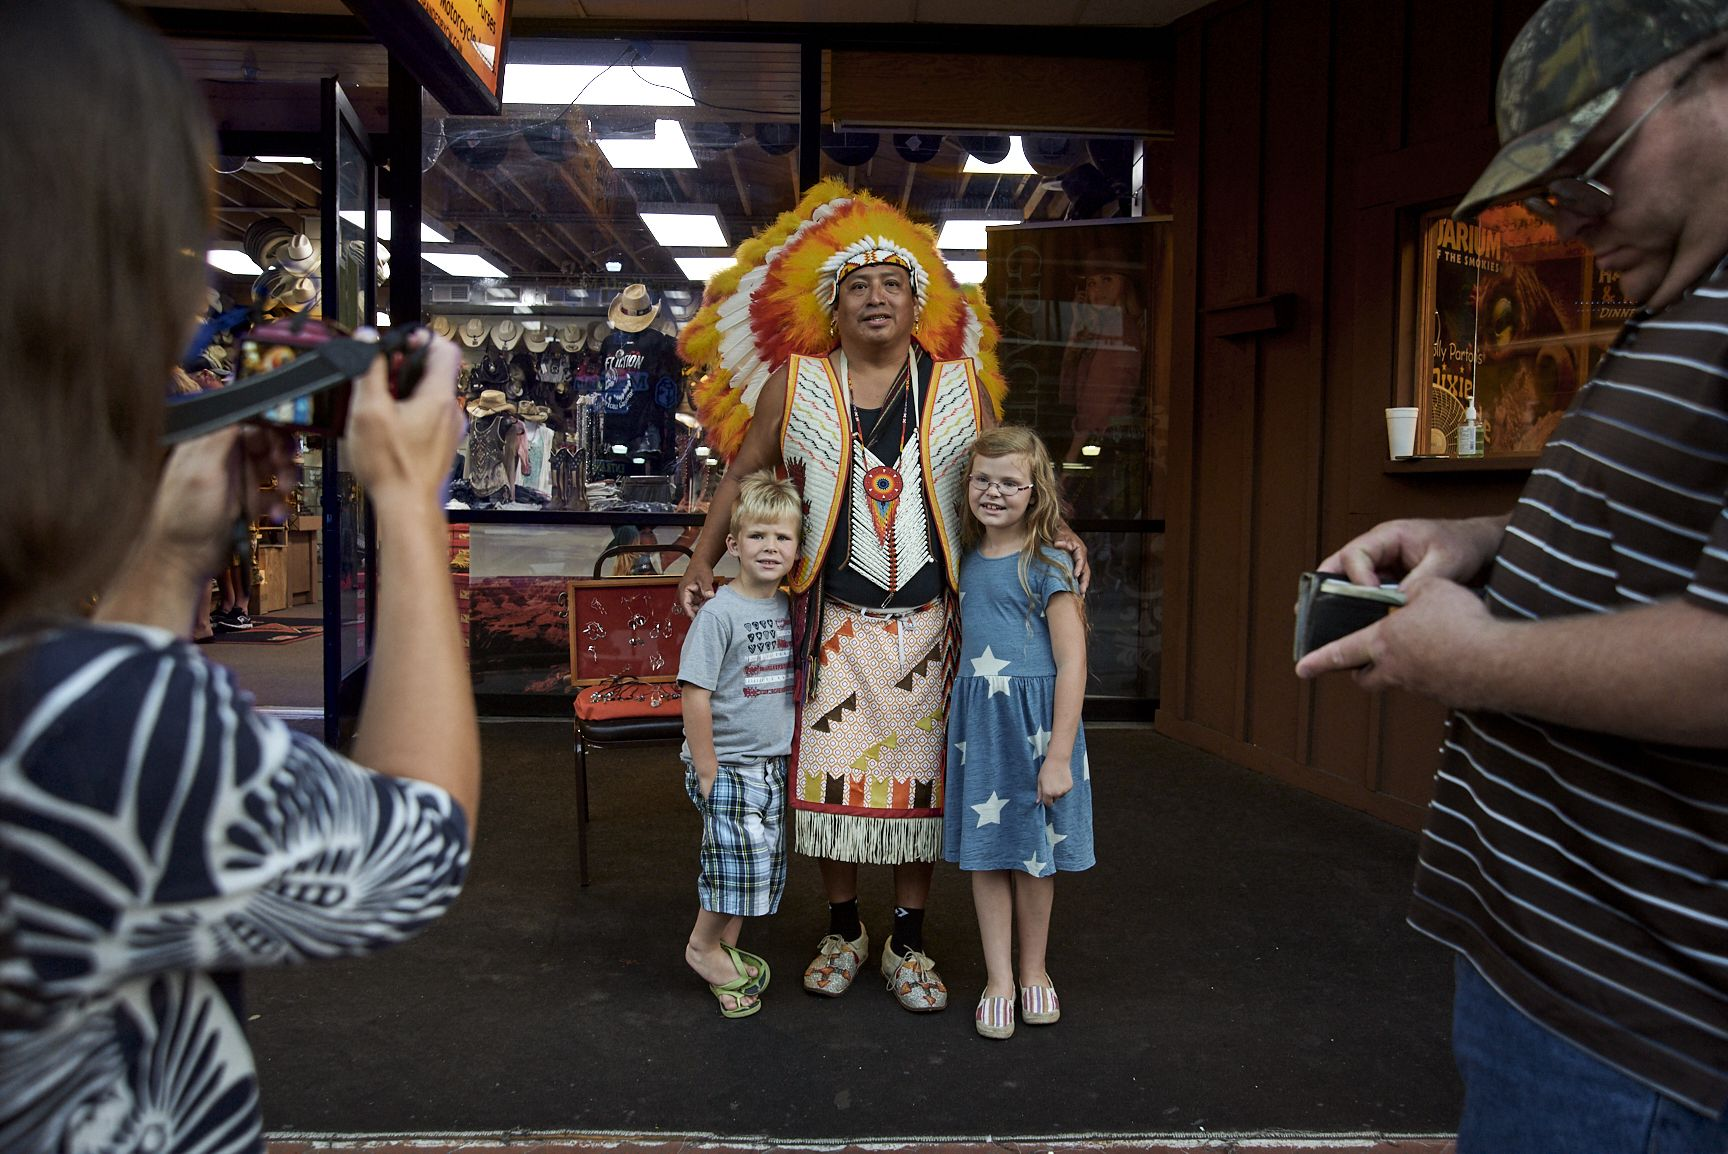 Stacy Kranitz  Gatlinburg, Tennessee, 2016  Archival pigment print  16 x 24 inches, Edition of 7  27 x 40 inches, Edition of 3, Two children and a native american in traditional dress